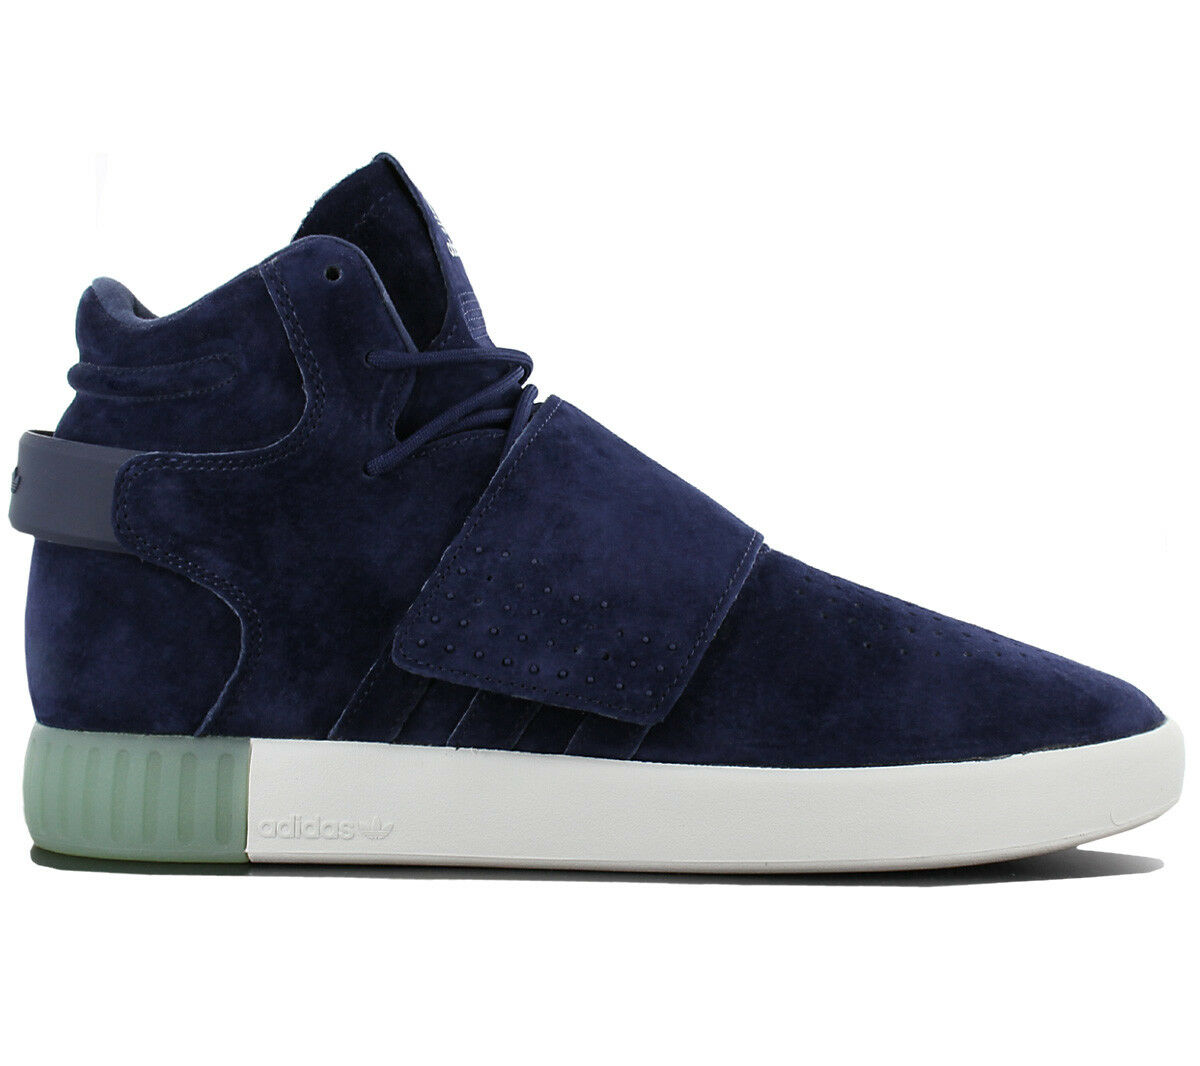 Adidas Originals Tubular Strap Invader Strap Tubular Leather Blue Men's Shoes Sneakers BB5041 f0ee06